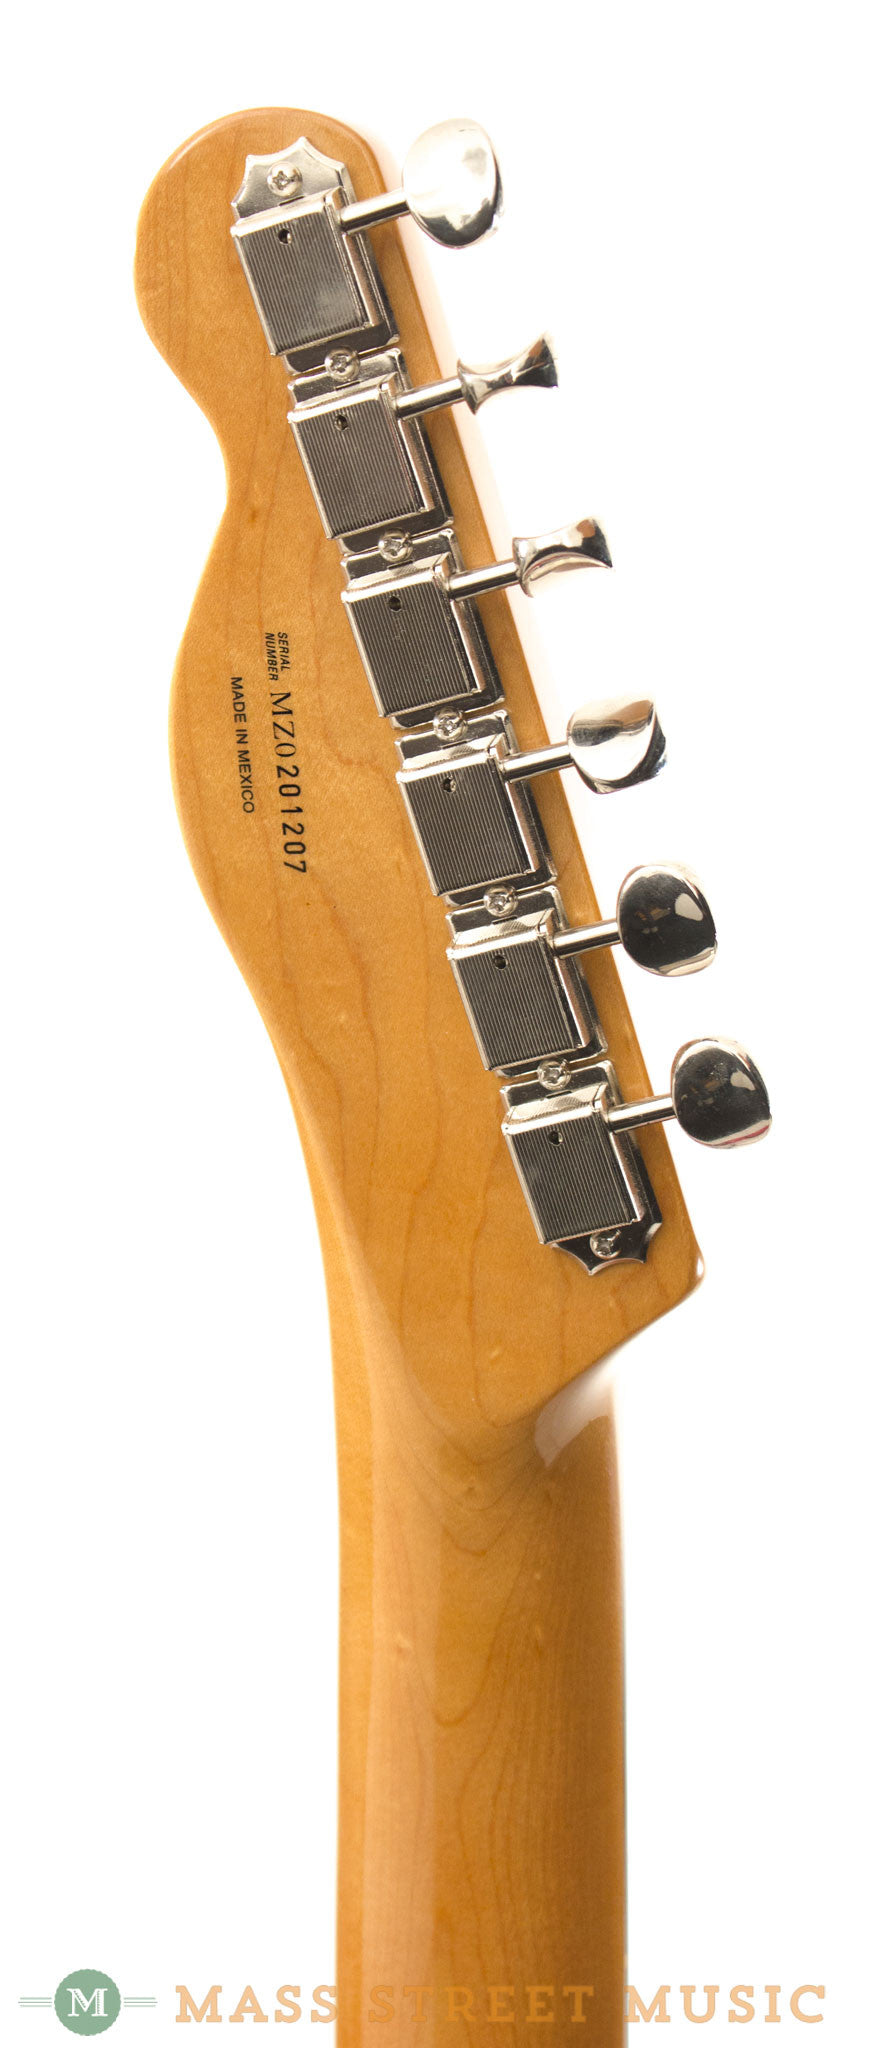 Fender Muddy Waters Telecaster 2000 Used Electric Guitar ...